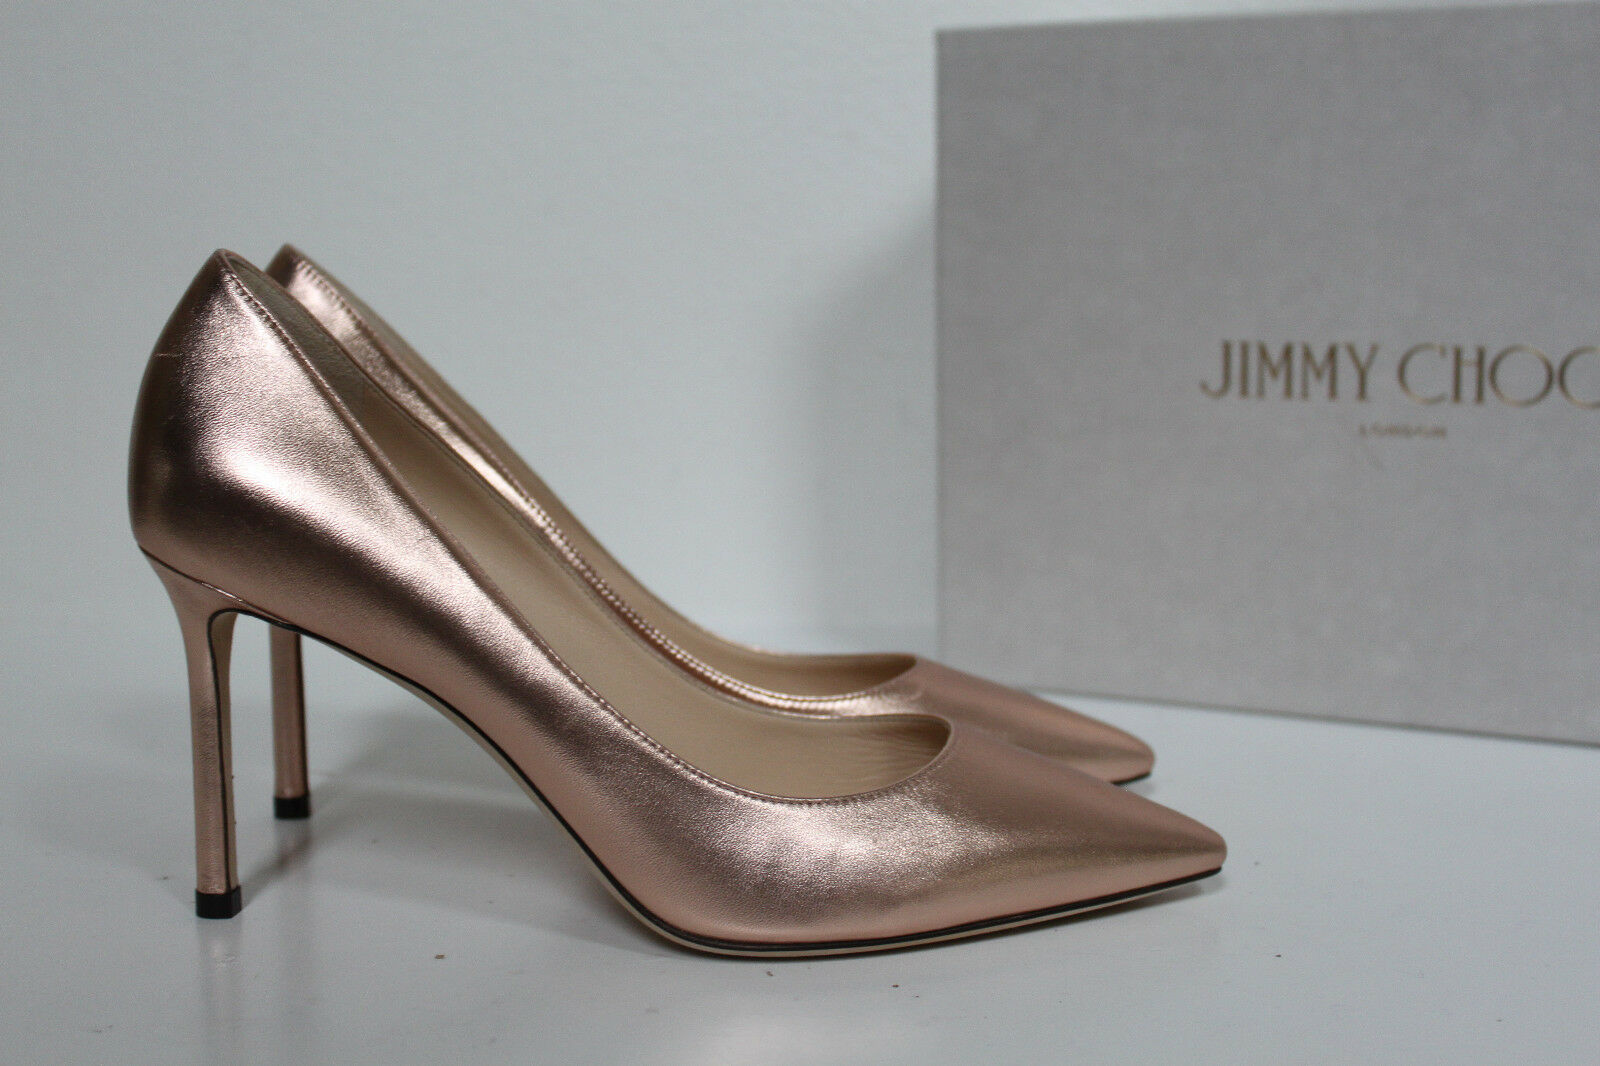 New sz 9   39 Jimmy Choo Romy pink Metallic Leather Pointed Toe Pump shoes